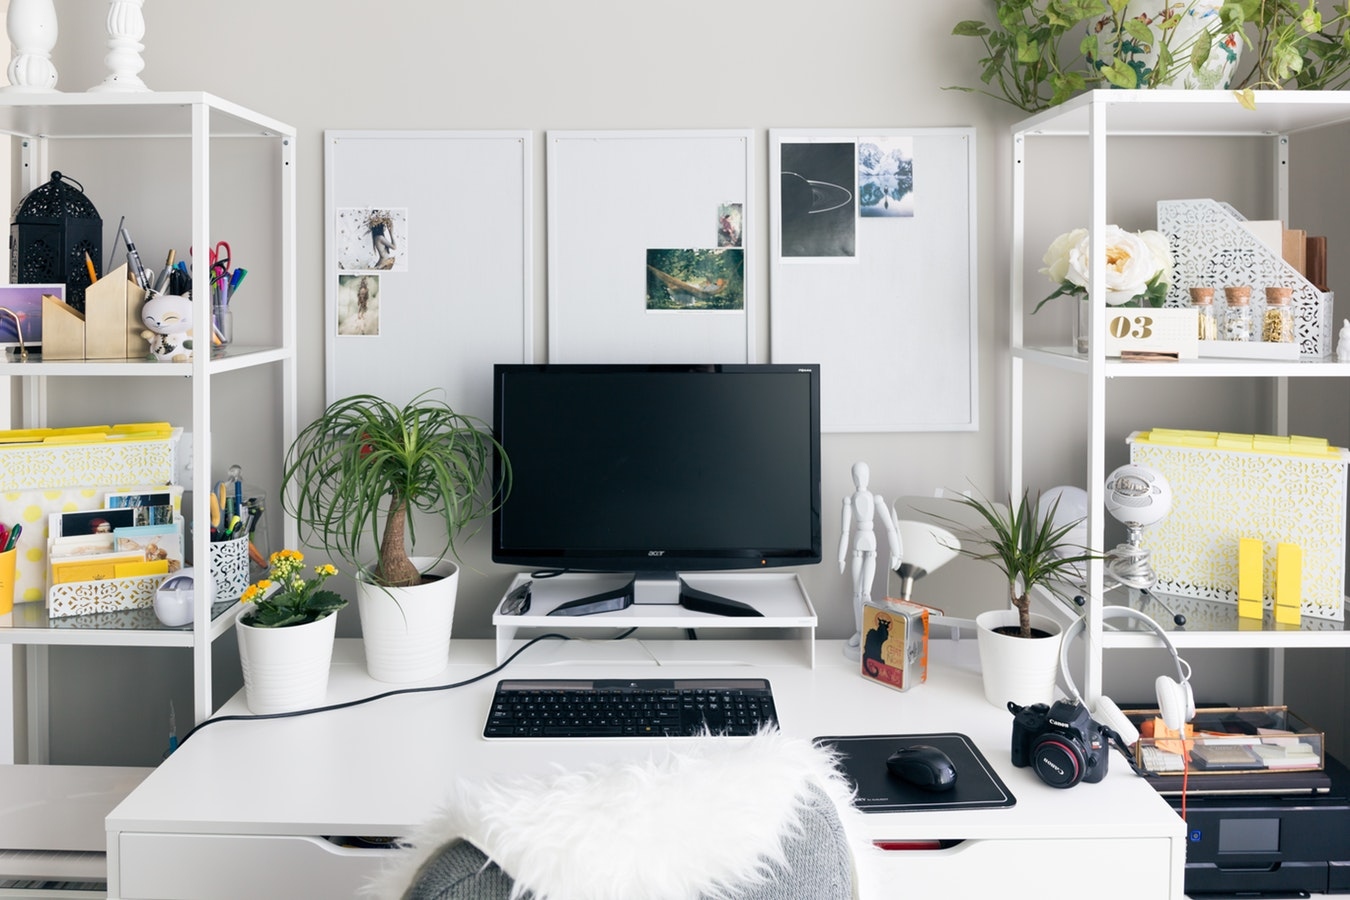 How To Reorganize Your Home Office and Make It More Efficient